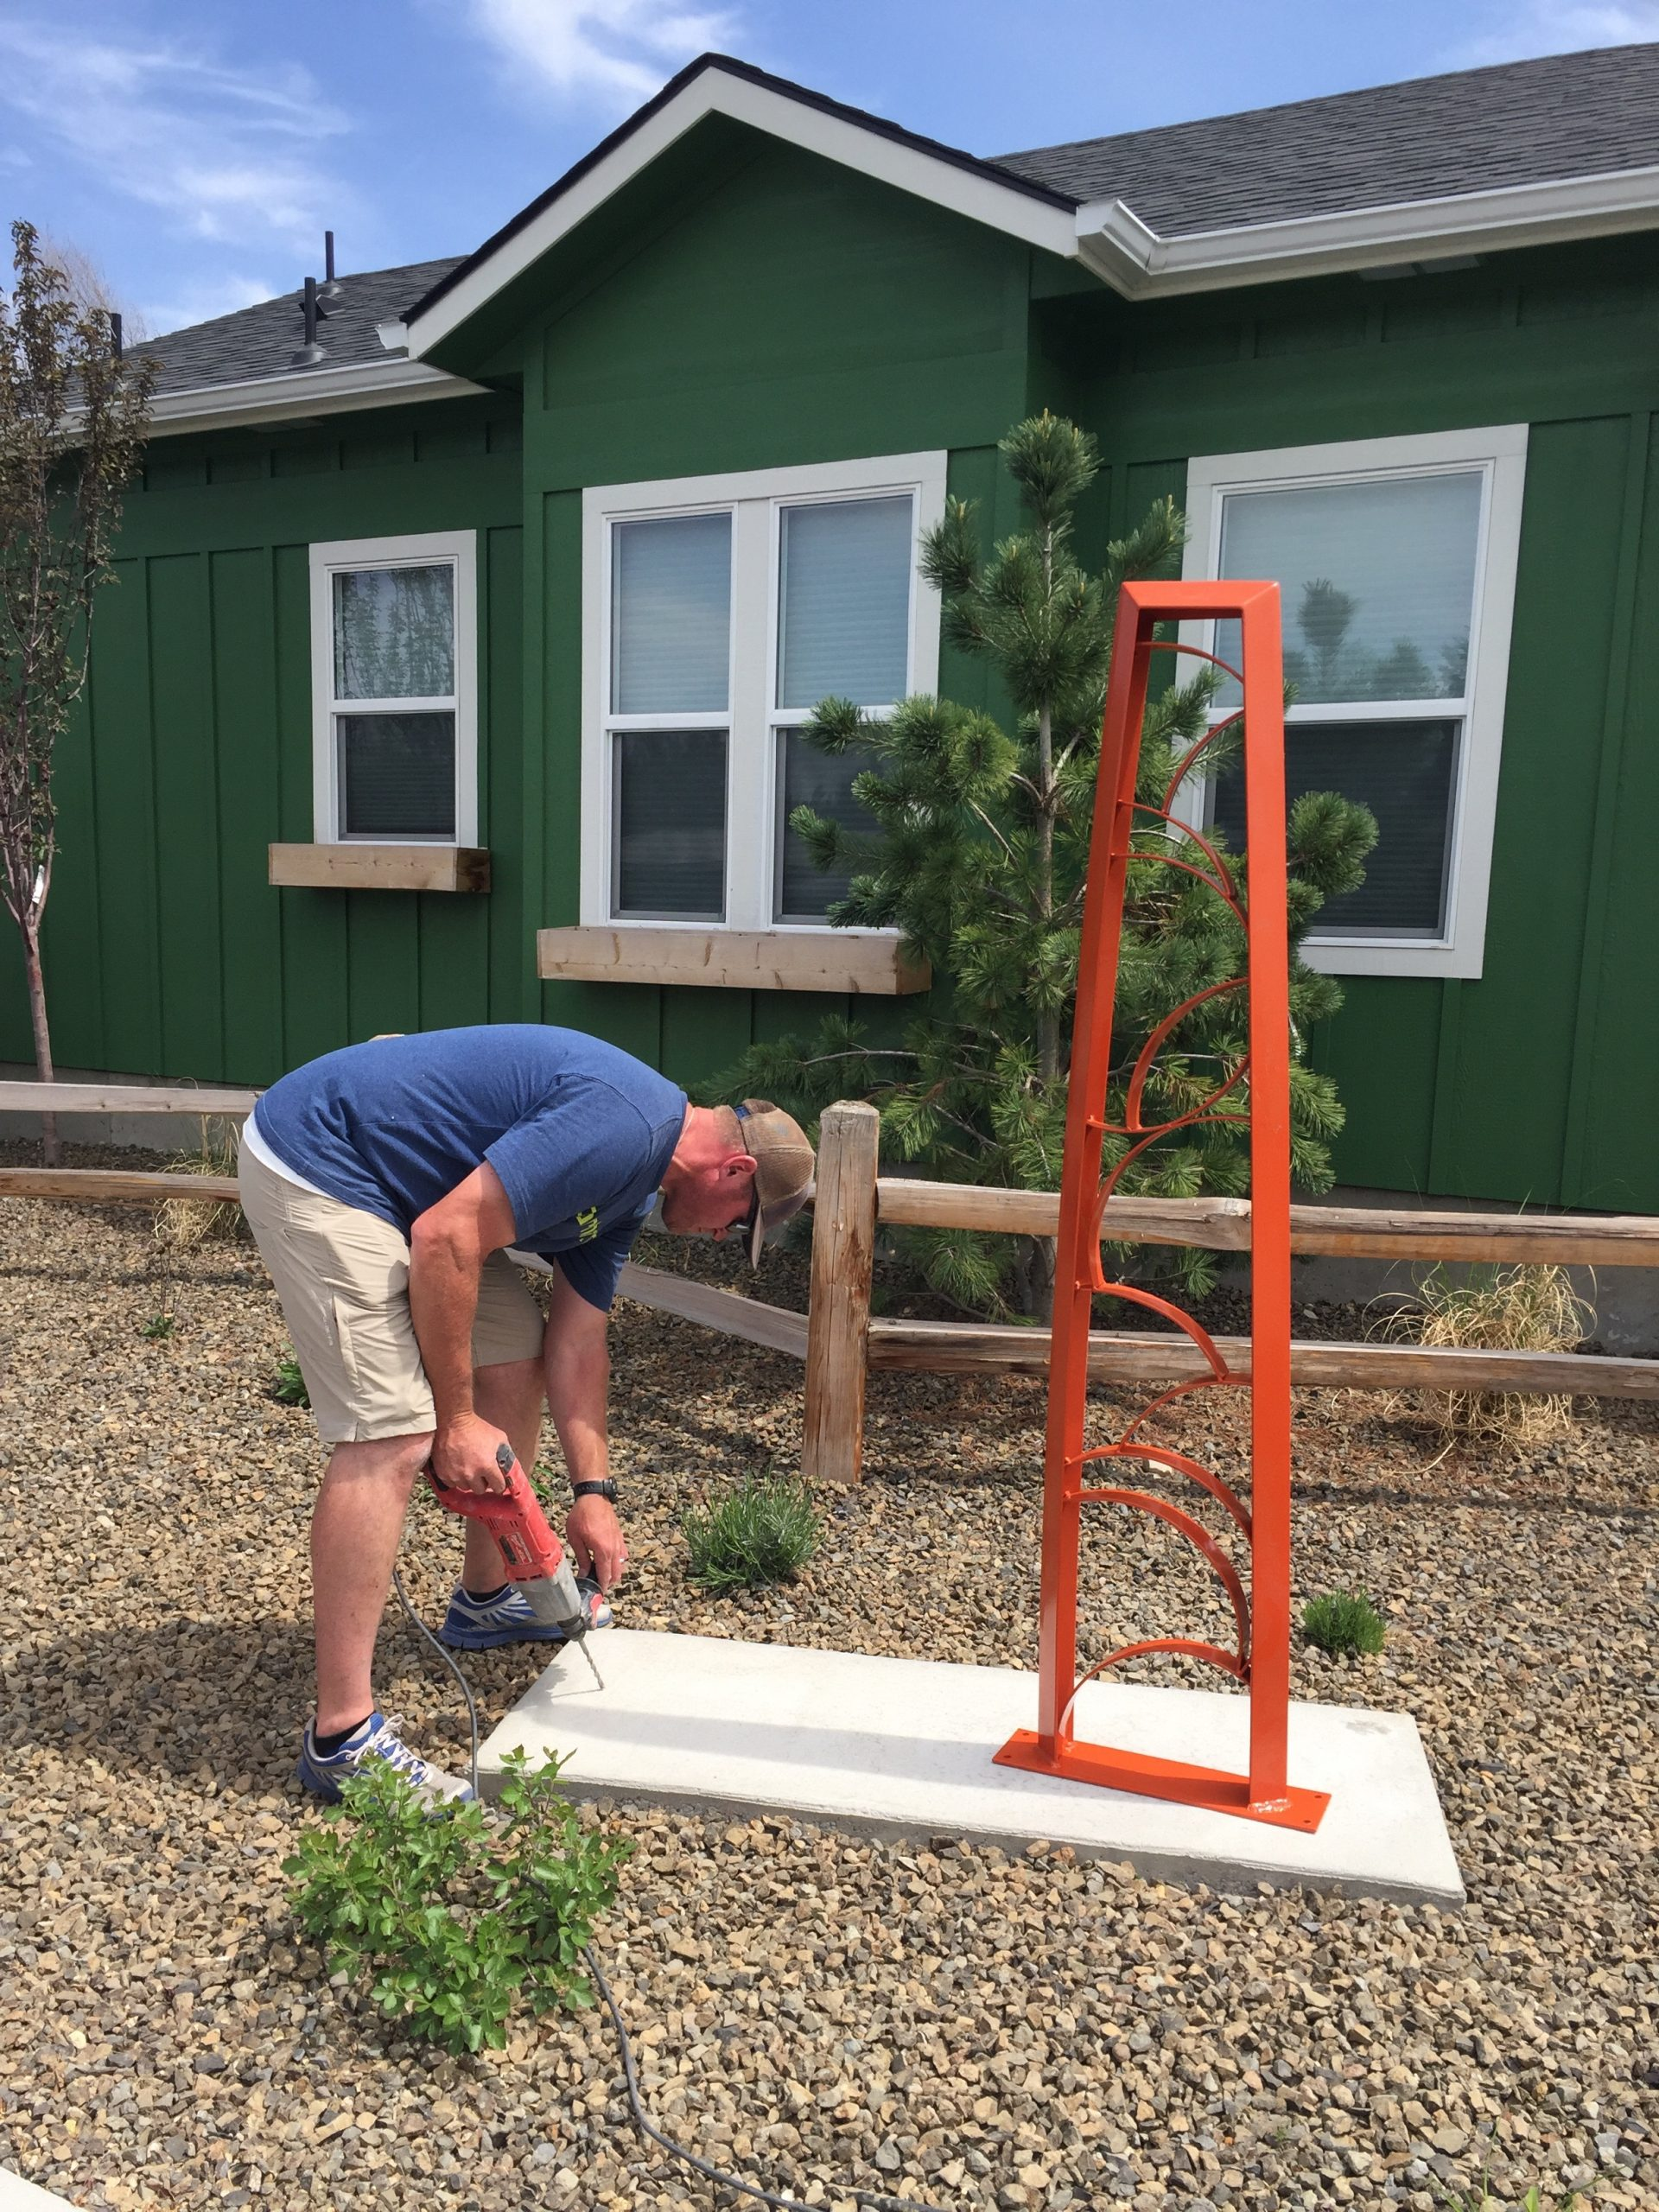 NeighborWorks Boise: 40th Street